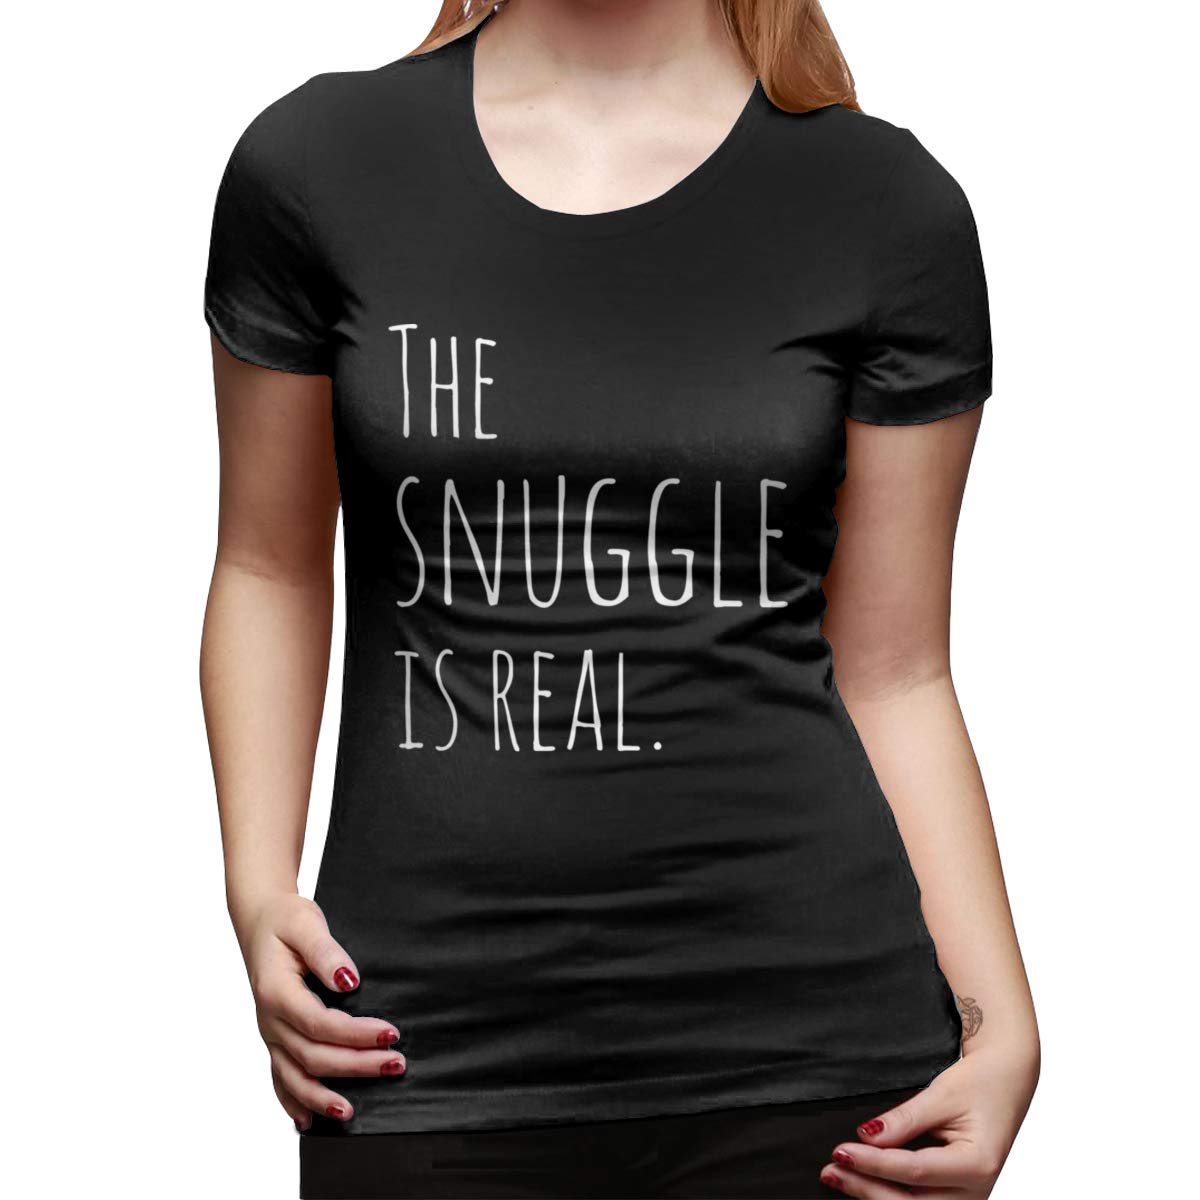 Seuriamin The Snuggle is Real Womens Fashion Hiking Round Neck Short Sleeve Tee Shirt Tops